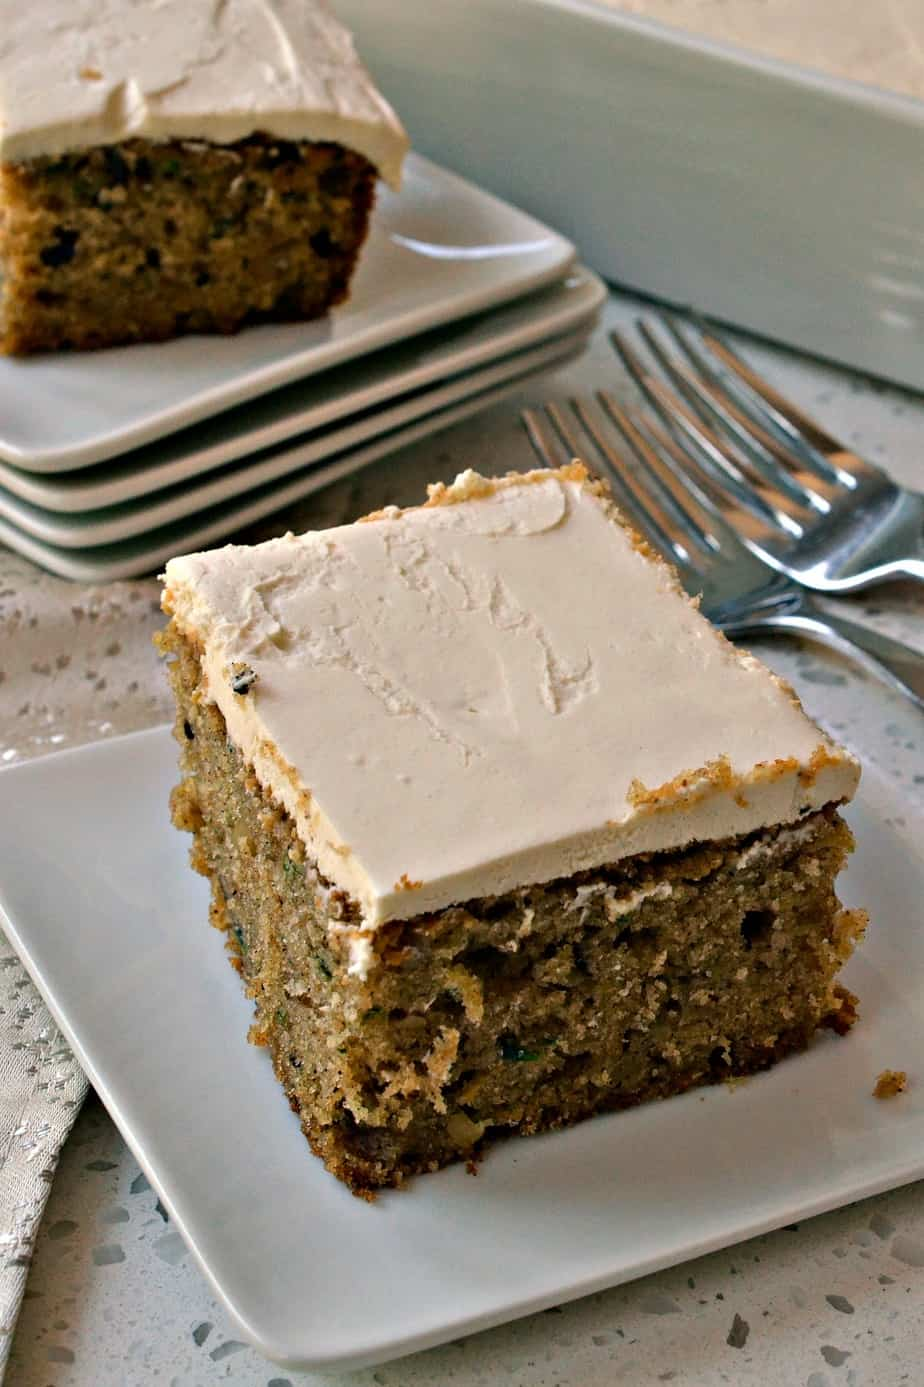 This scrumptious and moist zucchini cake is flavored with fresh zucchini, walnuts, cinnamon, nutmeg and allspice.